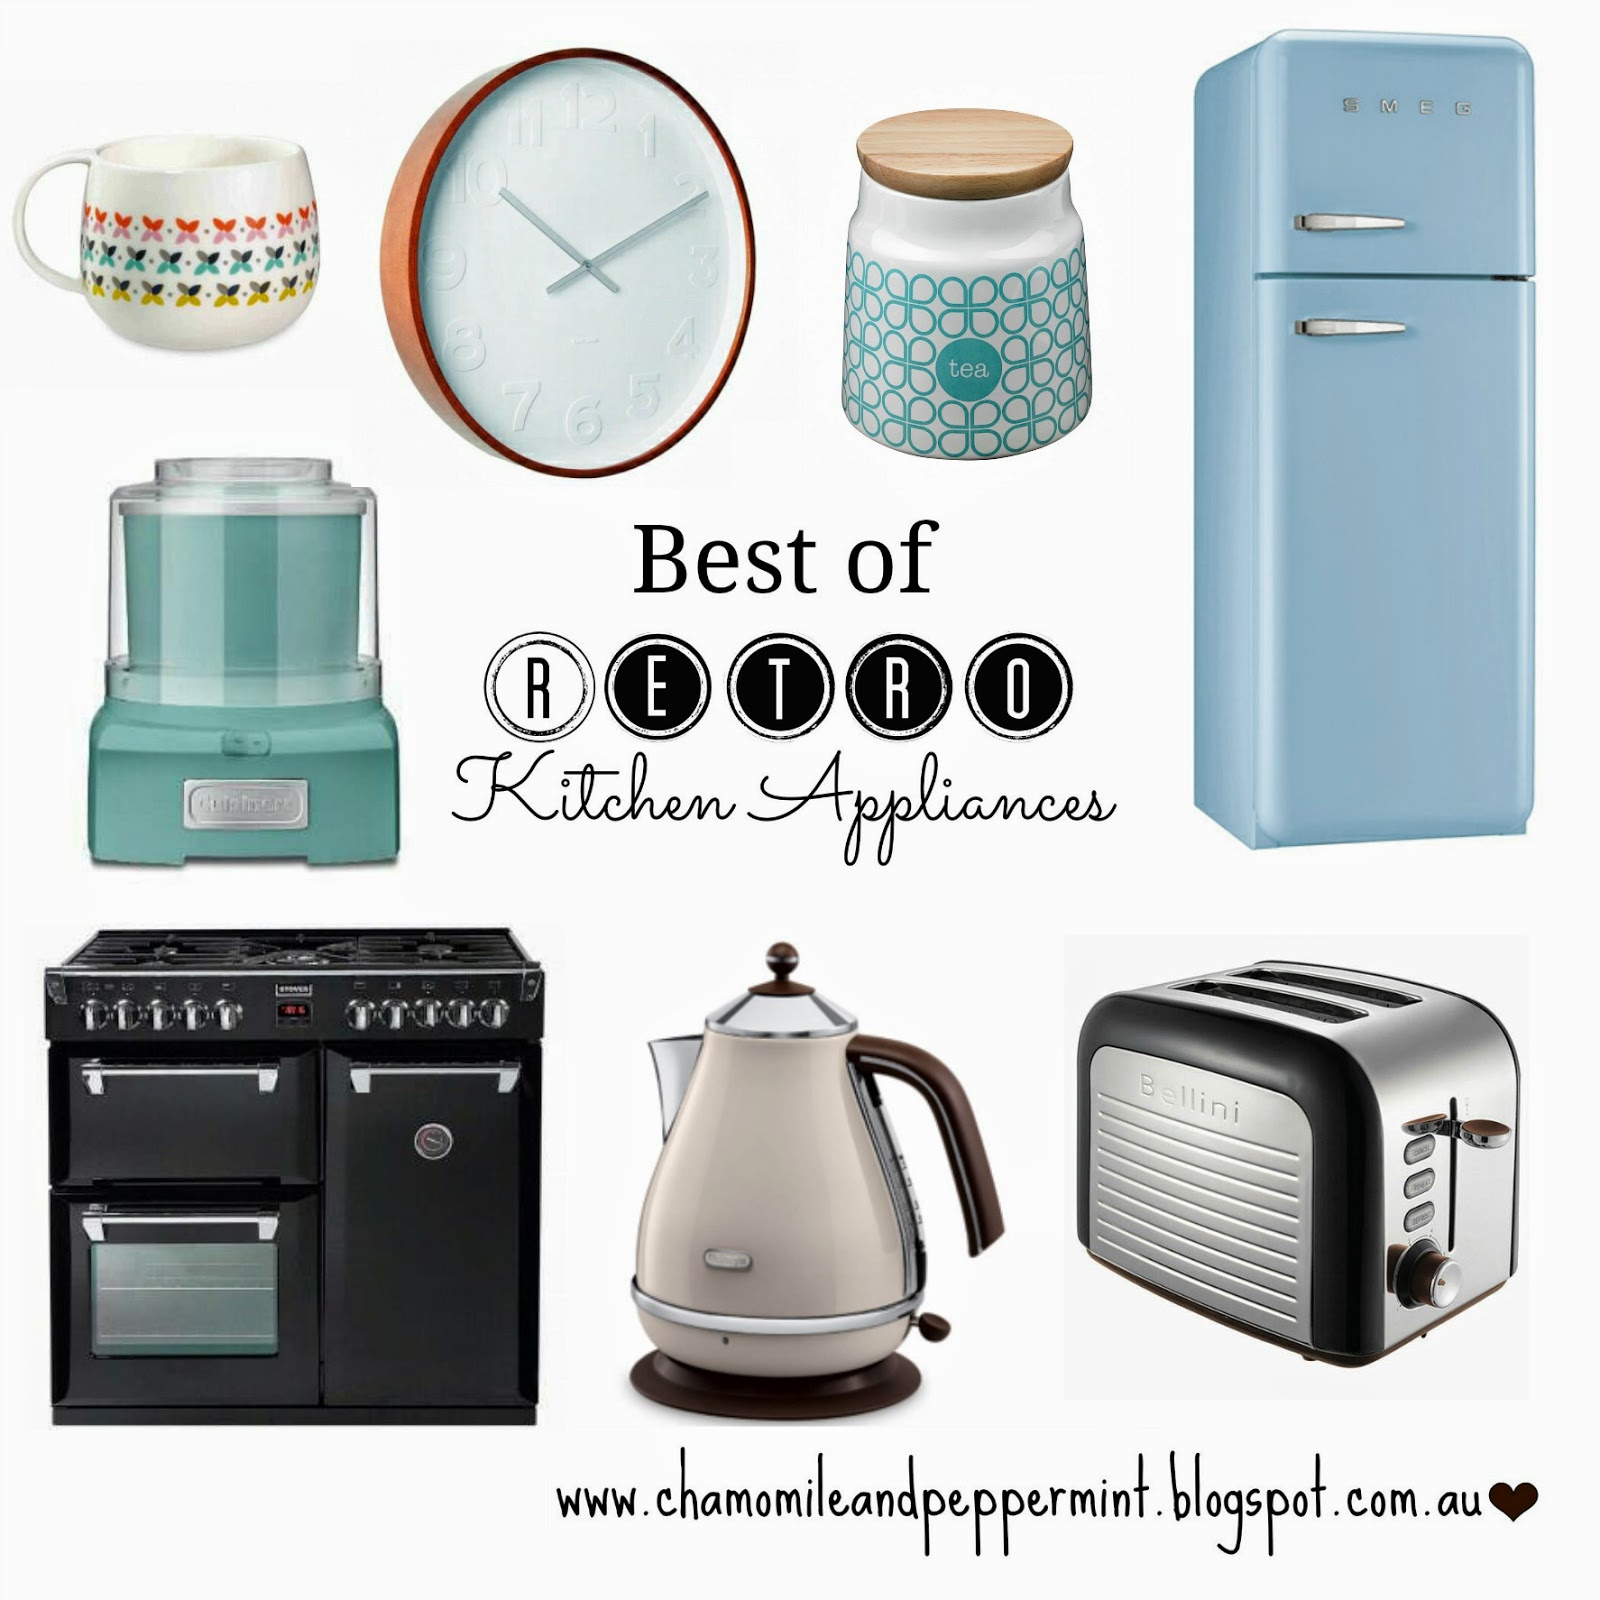 Chamomile & Peppermint: Best Of Retro Kitchen Appliances